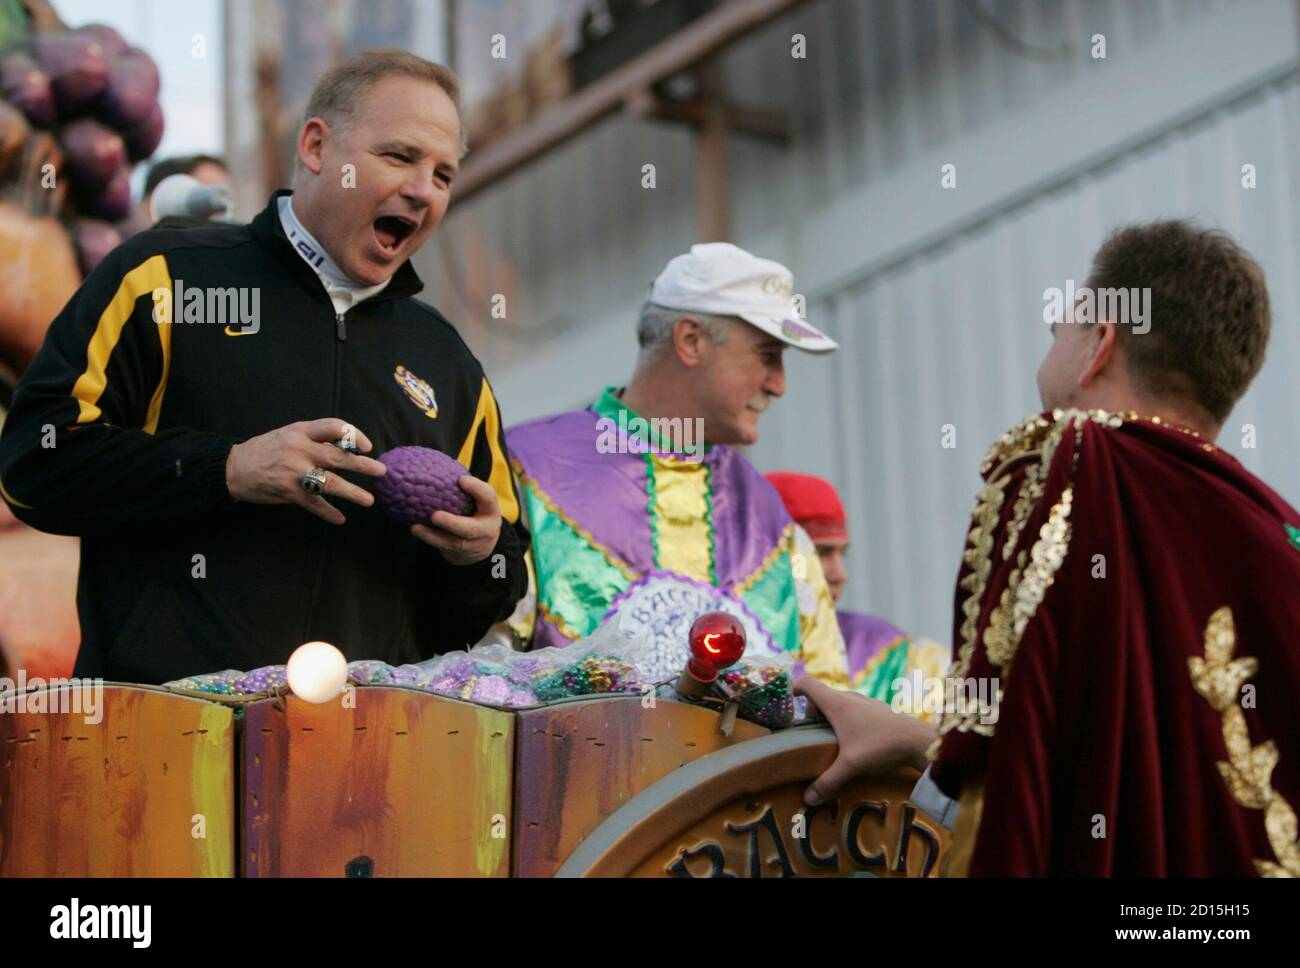 Louisiana State University national champion football head coach Les Miles (L) signs a football for a crew member during the Bacchus Mardi Gras parade in New Orleans, Louisiana February 3, 2008. REUTERS/Lee Celano (UNITED STATES) Stock Photo